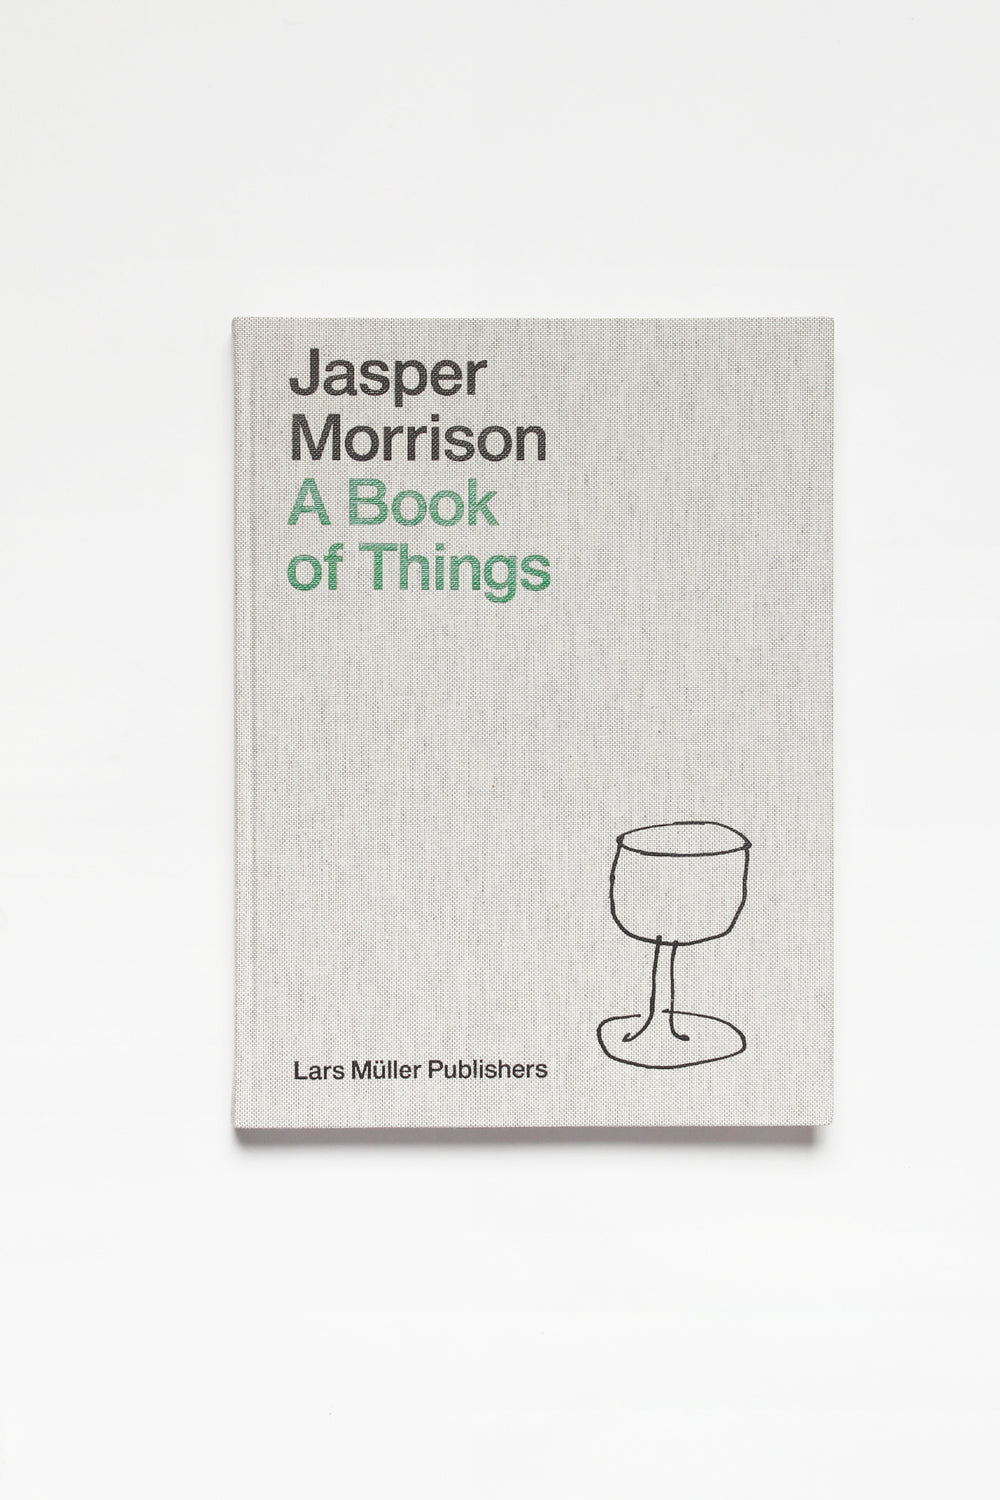 A Book of Things, by Jasper Morrison